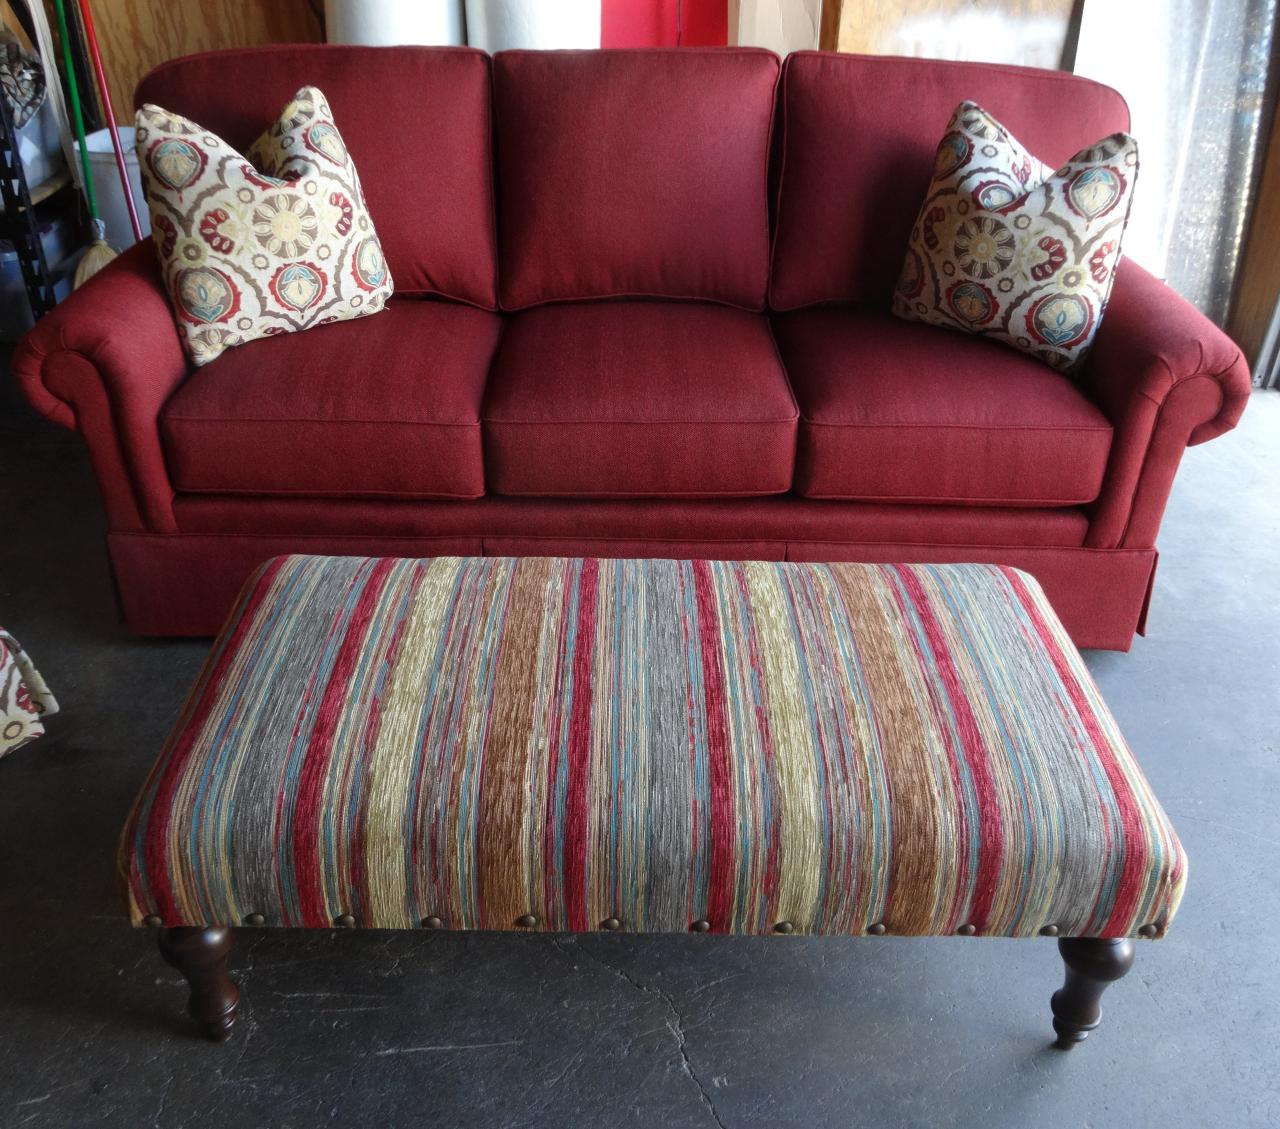 king hickory sofa winston large crossword puzzle clue barnett furniture bentley